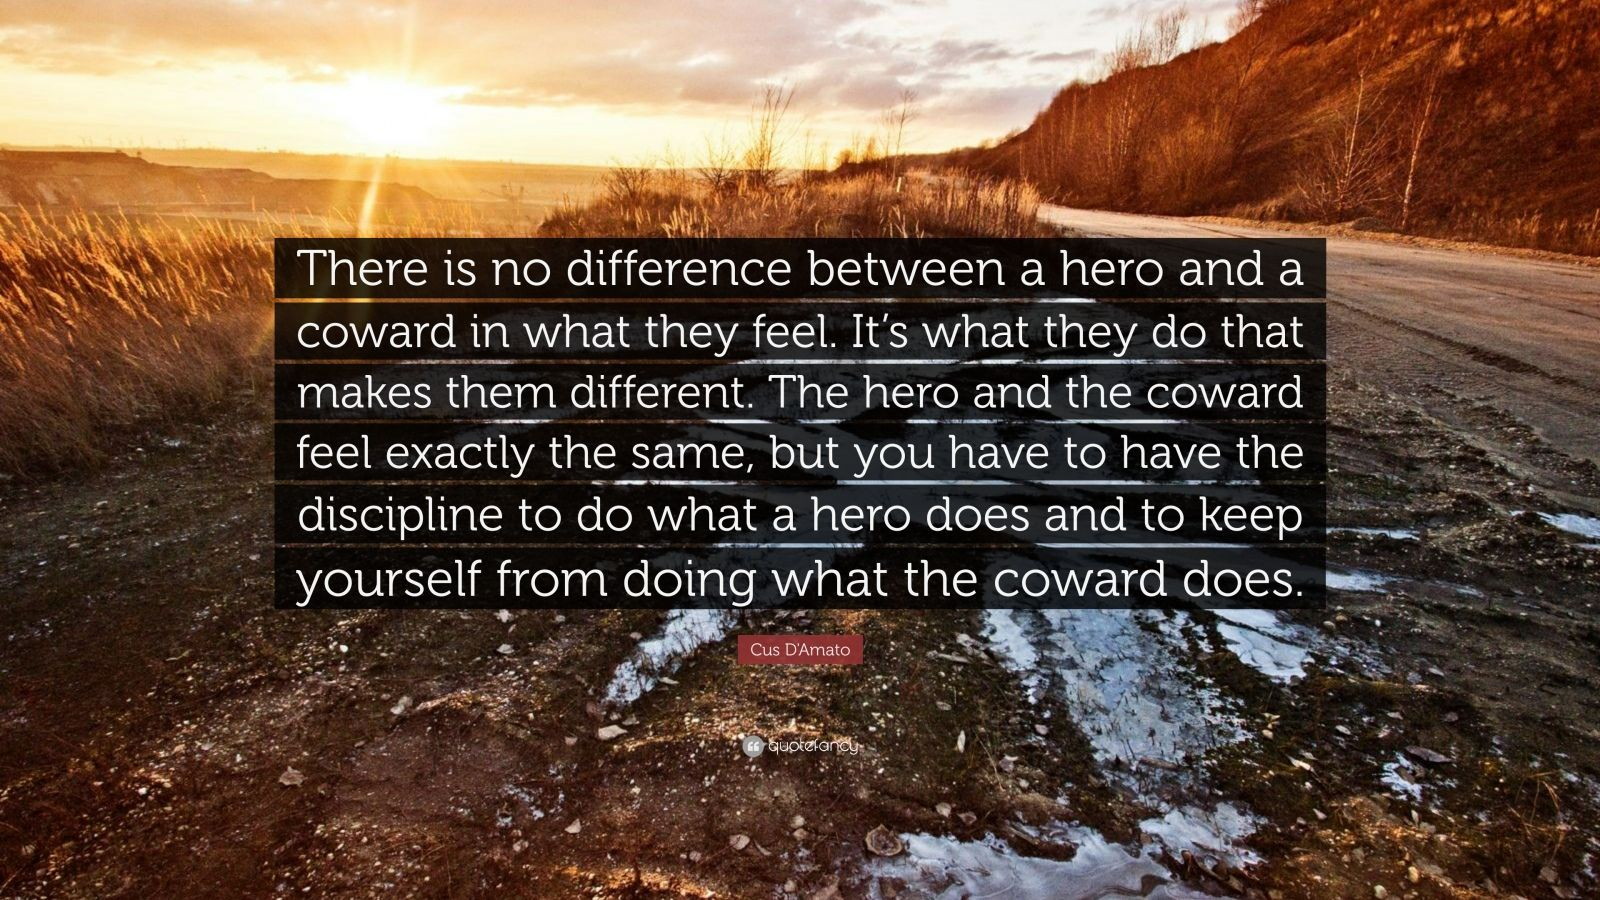 "Cus D'Amato Quote: ""There is no difference between a hero and a coward in what they feel. It's what they do that makes them different. The hero and the coward feel exactly the same, but you have to have the discipline to do what a hero does and to keep yourself from doing what the coward does."""